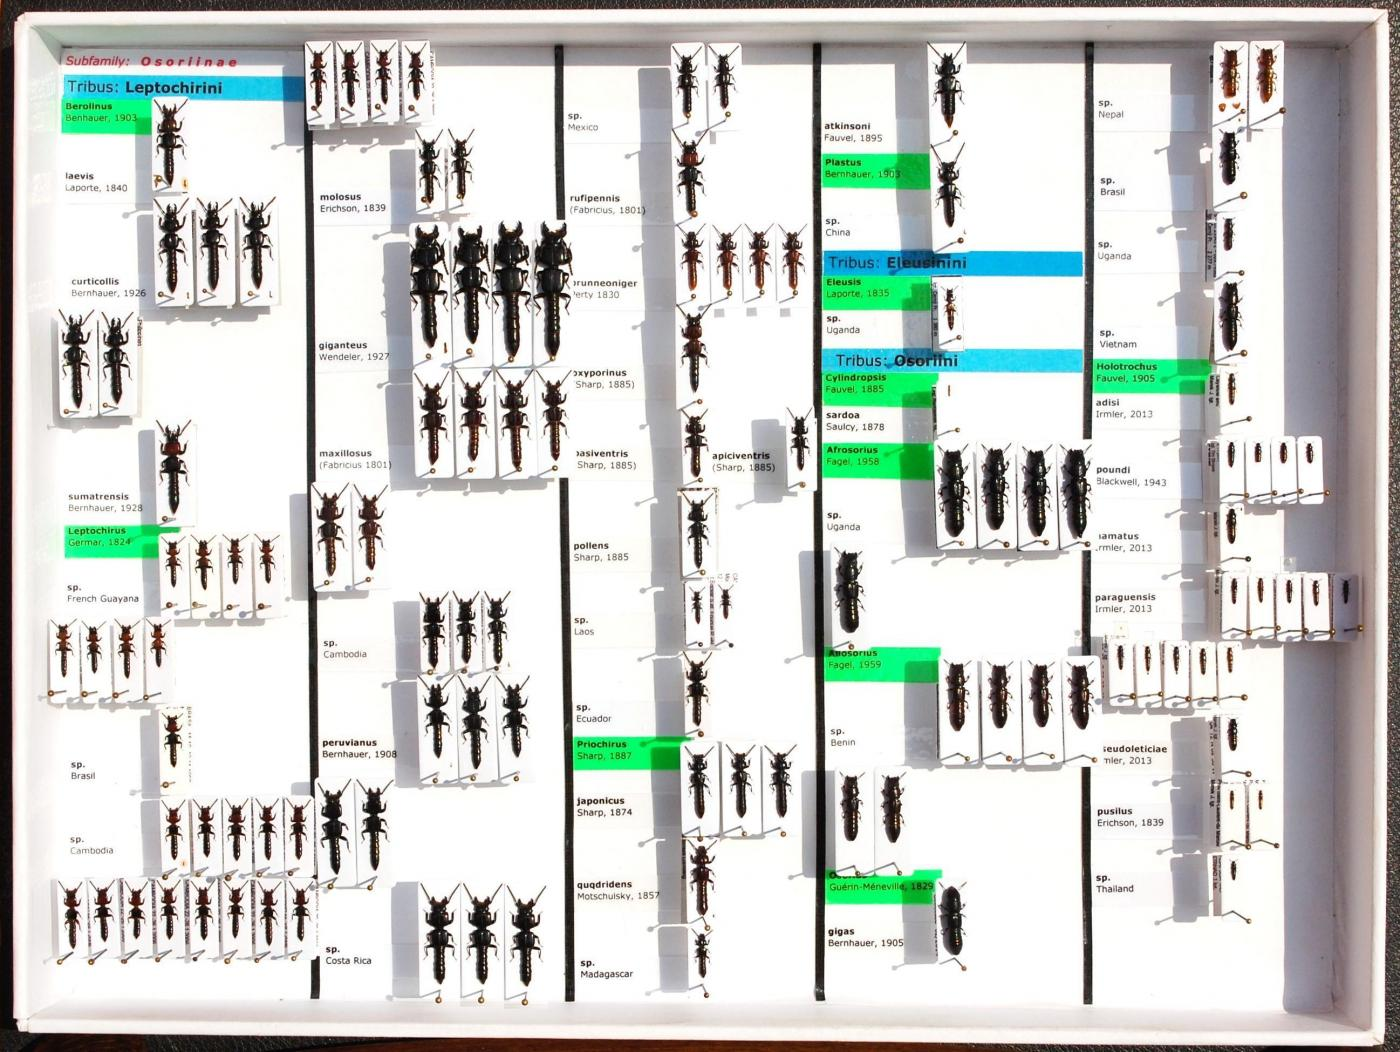 Staphylinidae_9.JPG - Attached Image (Click thumbnail to expand)